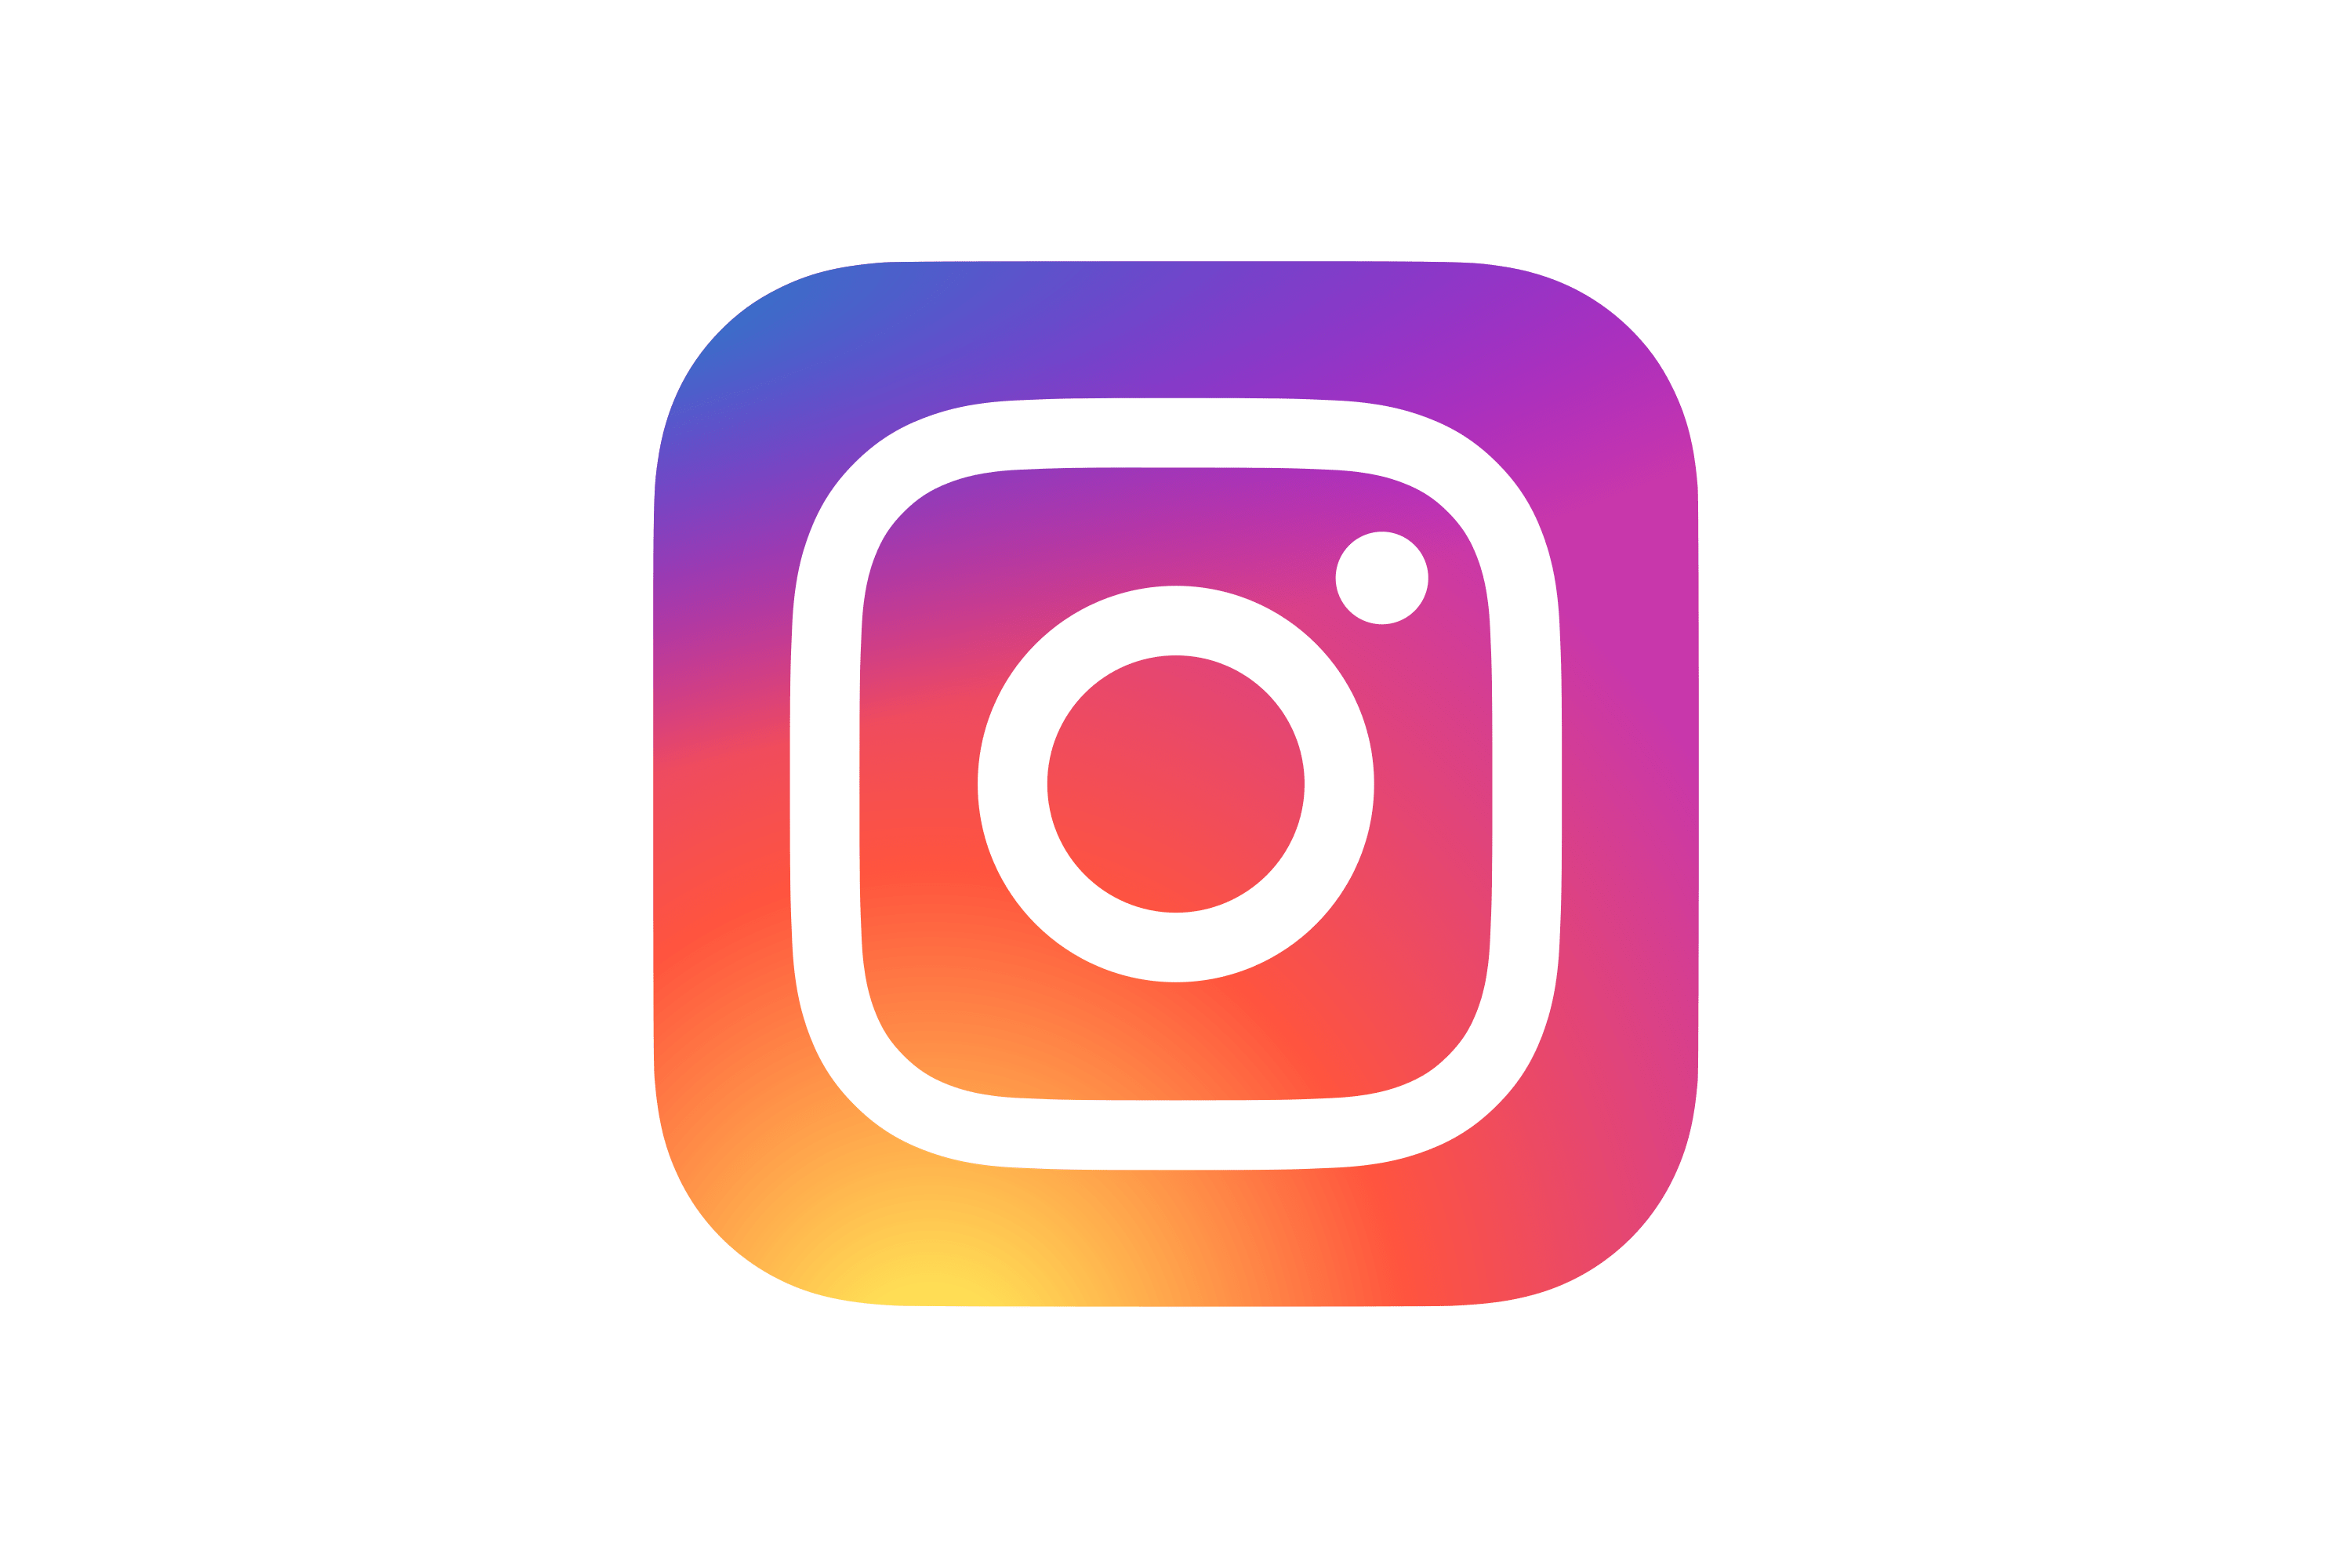 Download Instagram (IG) Logo in SVG Vector or PNG File Format - Logo.wine